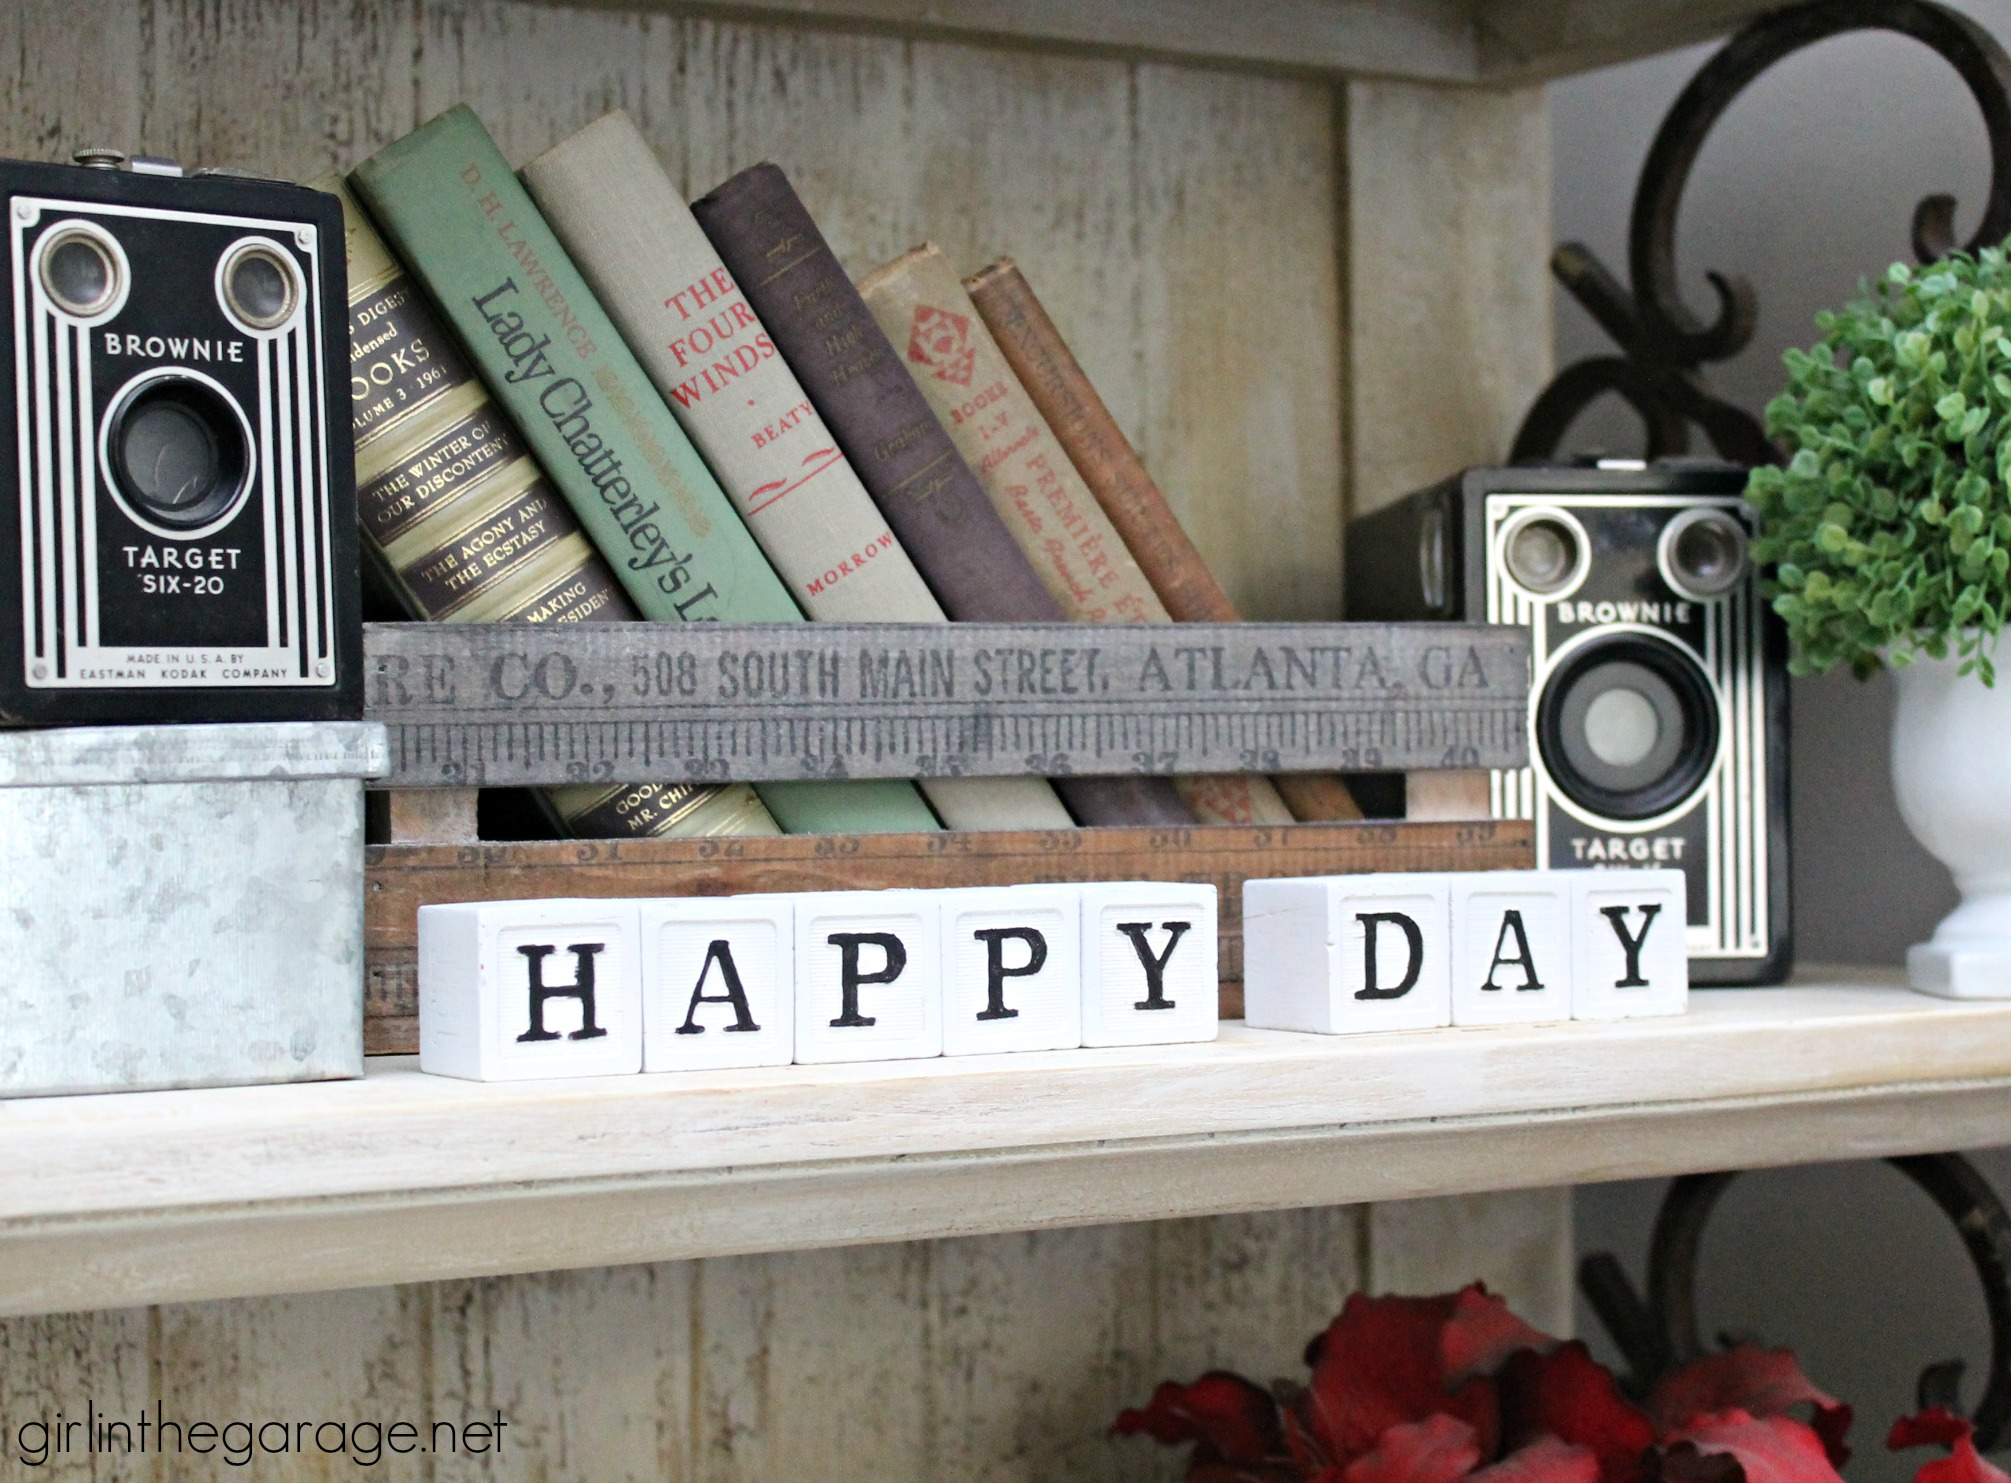 baby blocks aren't just for babies - with a fresh coat of paint, these letter blocks make a farmhouse style sign